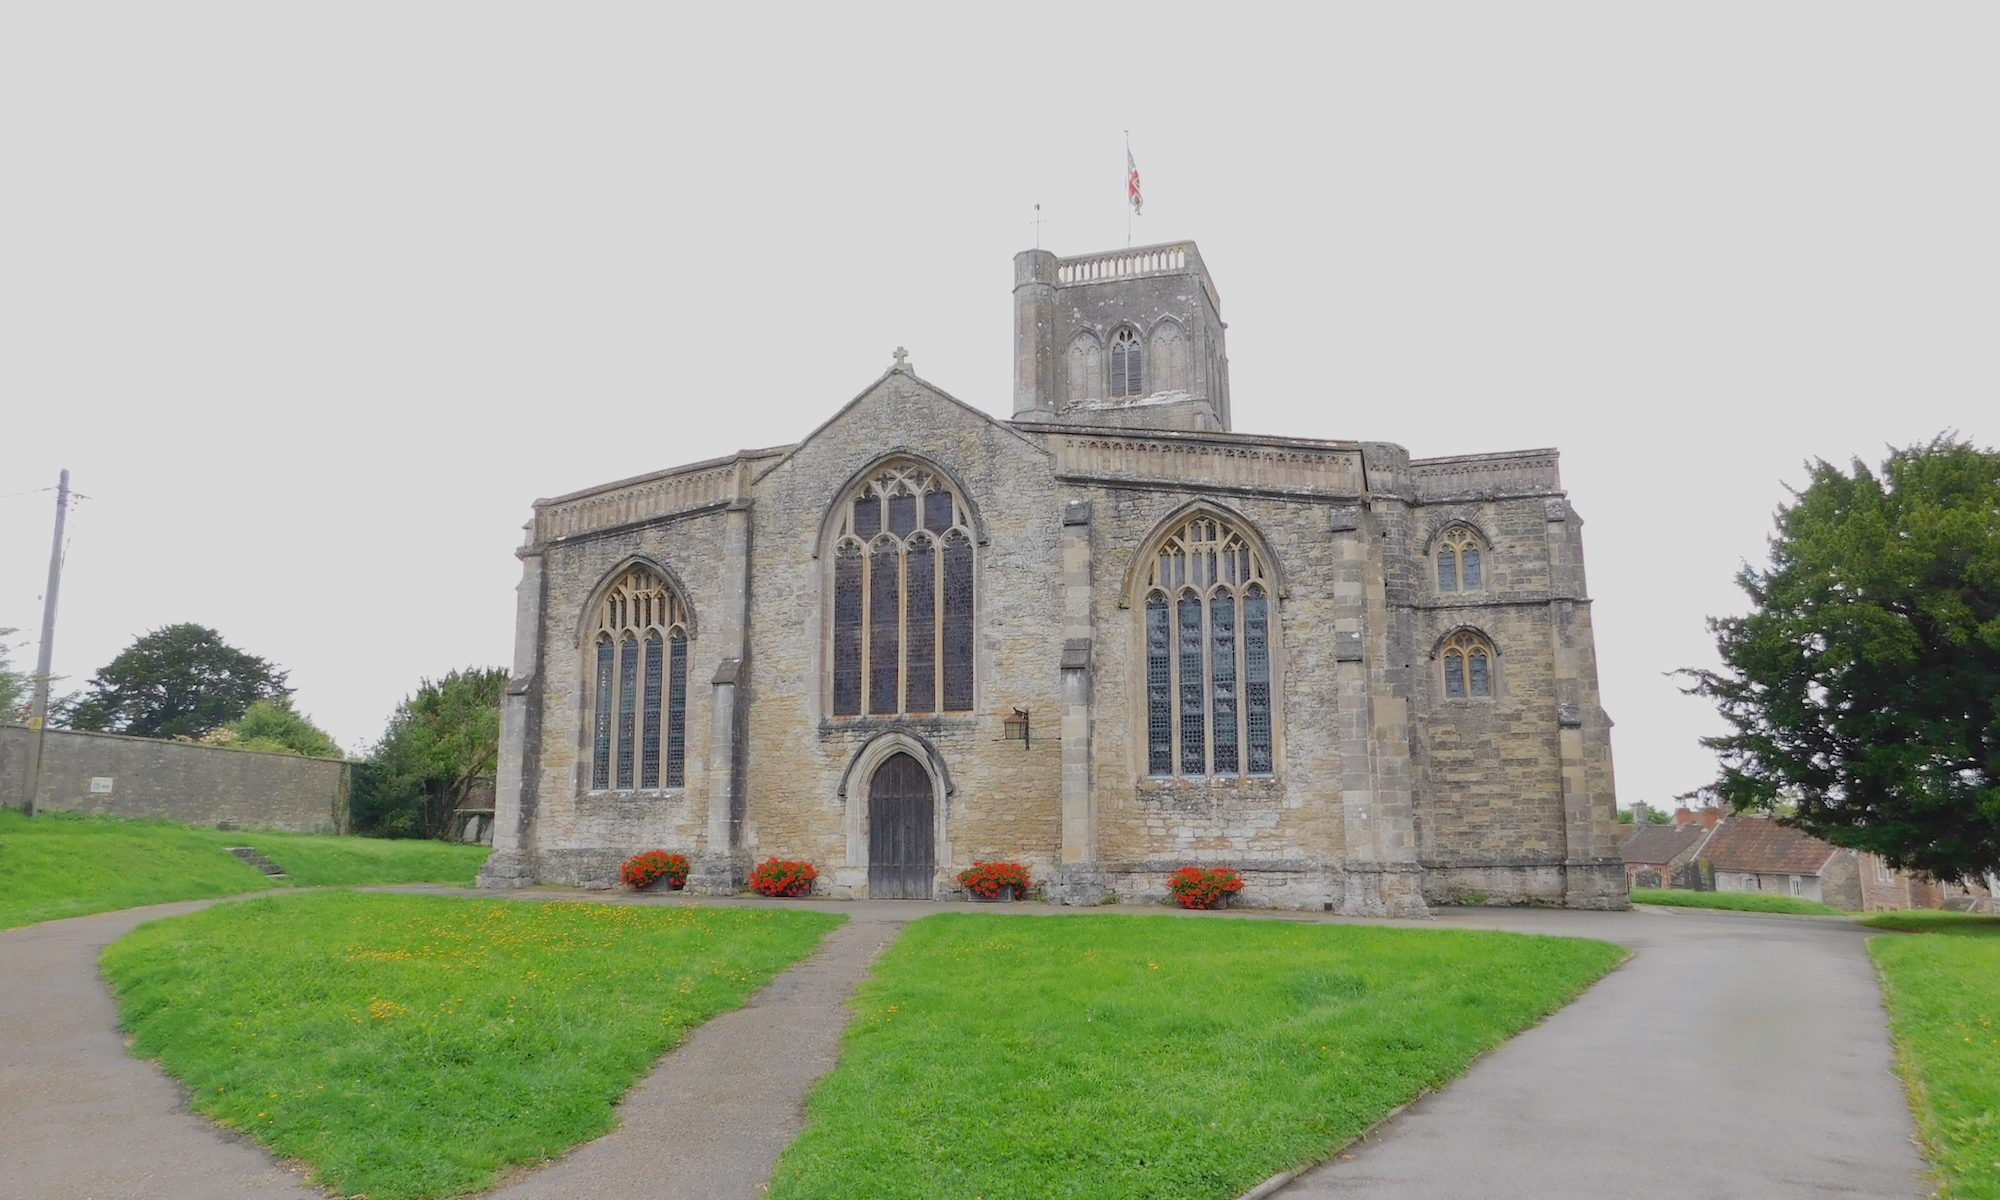 St Mary's church, Wedmore, Somerset Levels